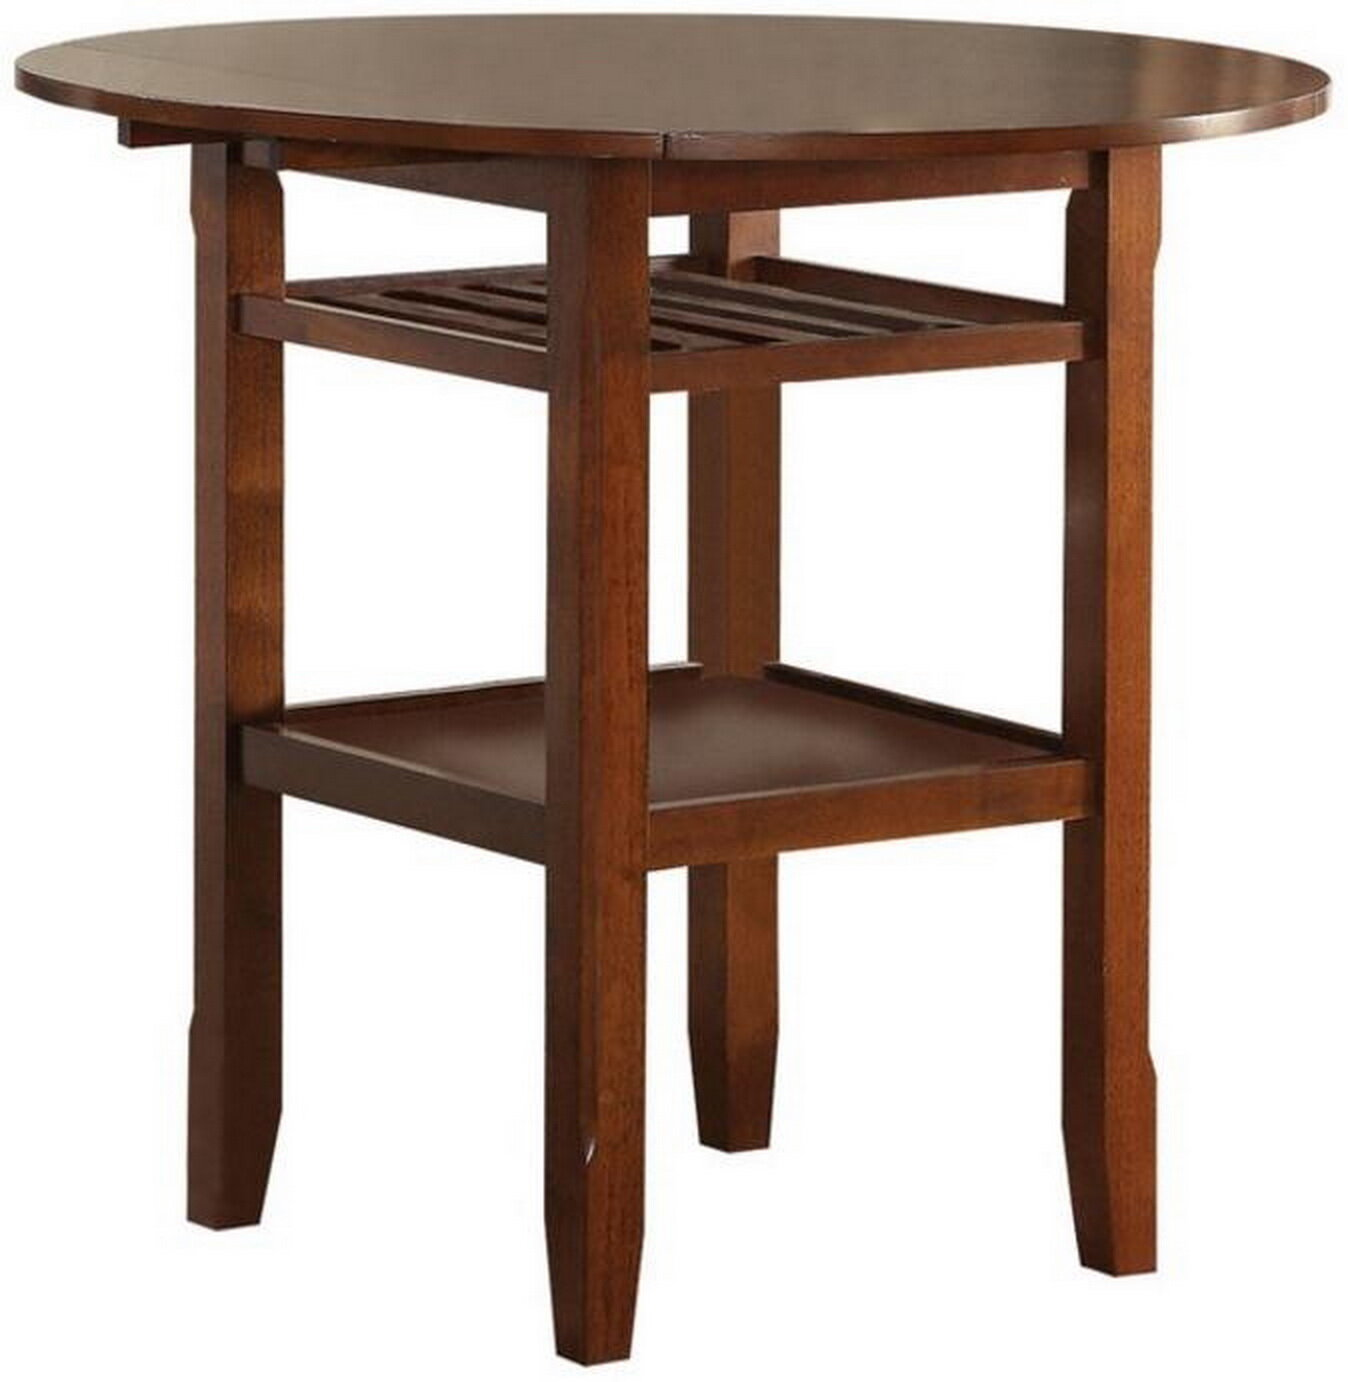 August Grove Talbot Counter Height Drop Leaf Dining Table | Wayfair